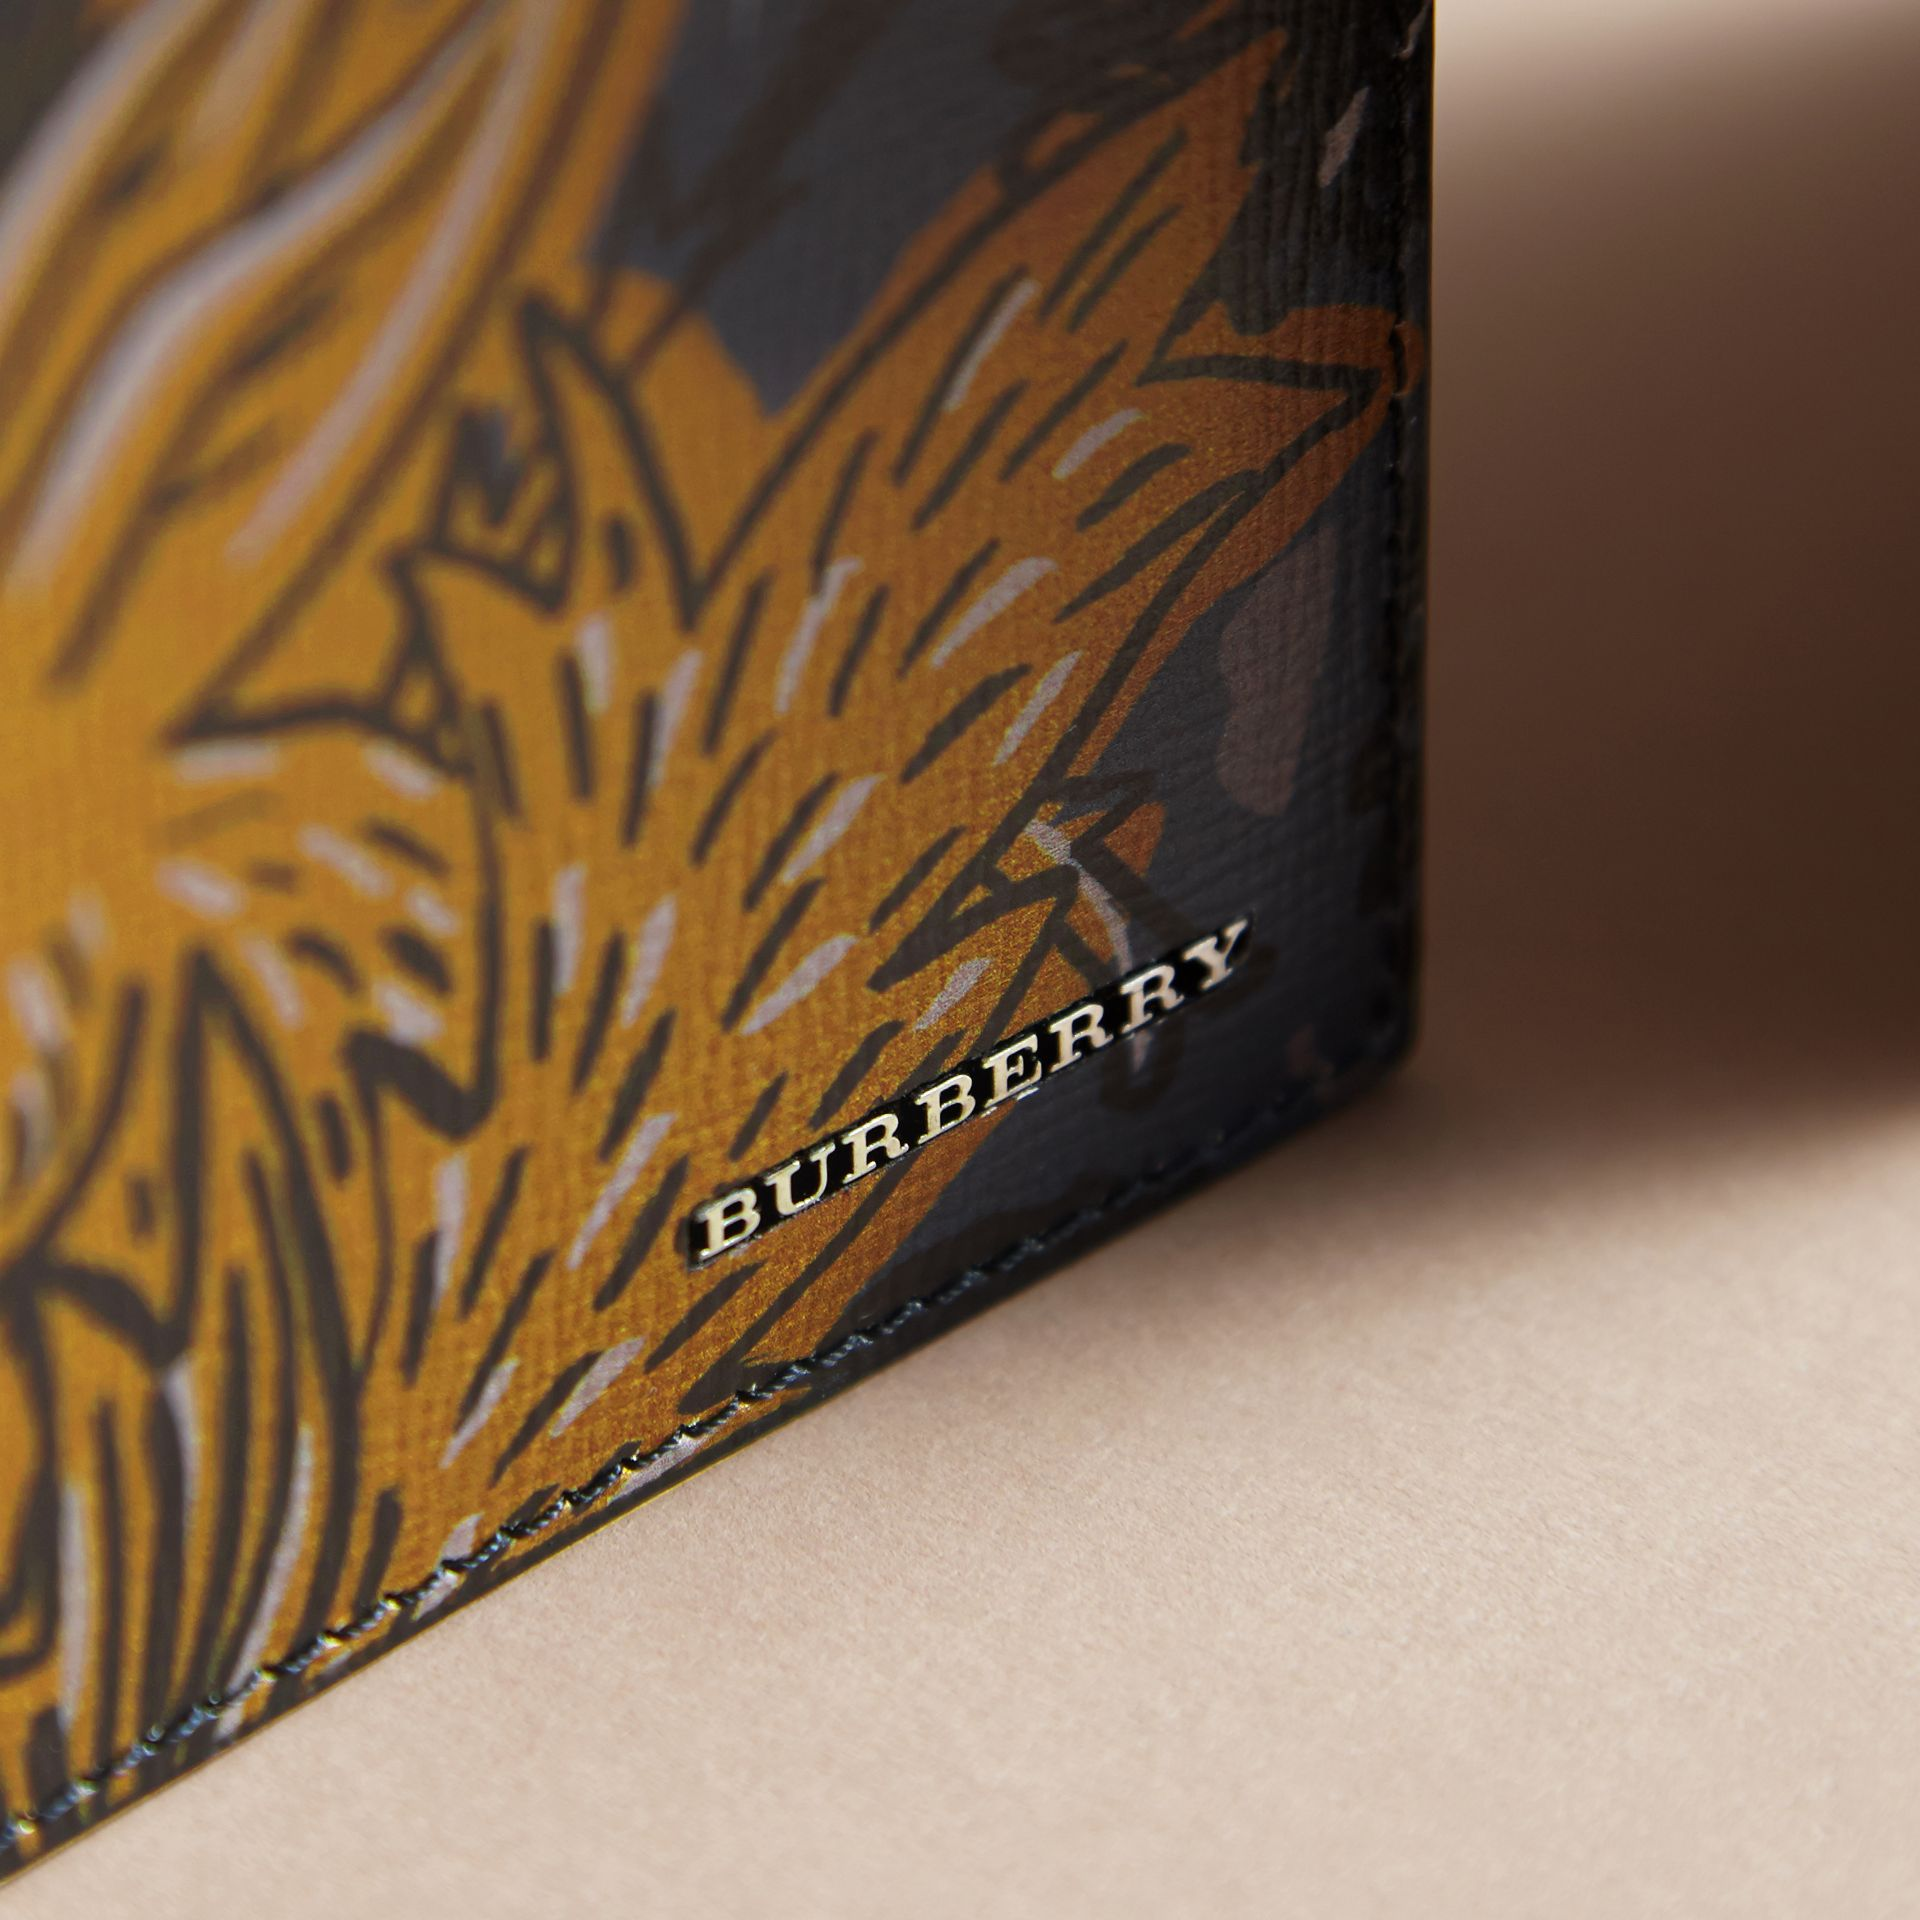 Beasts Print Leather Folding Wallet in Navy Grey - Men | Burberry - gallery image 2